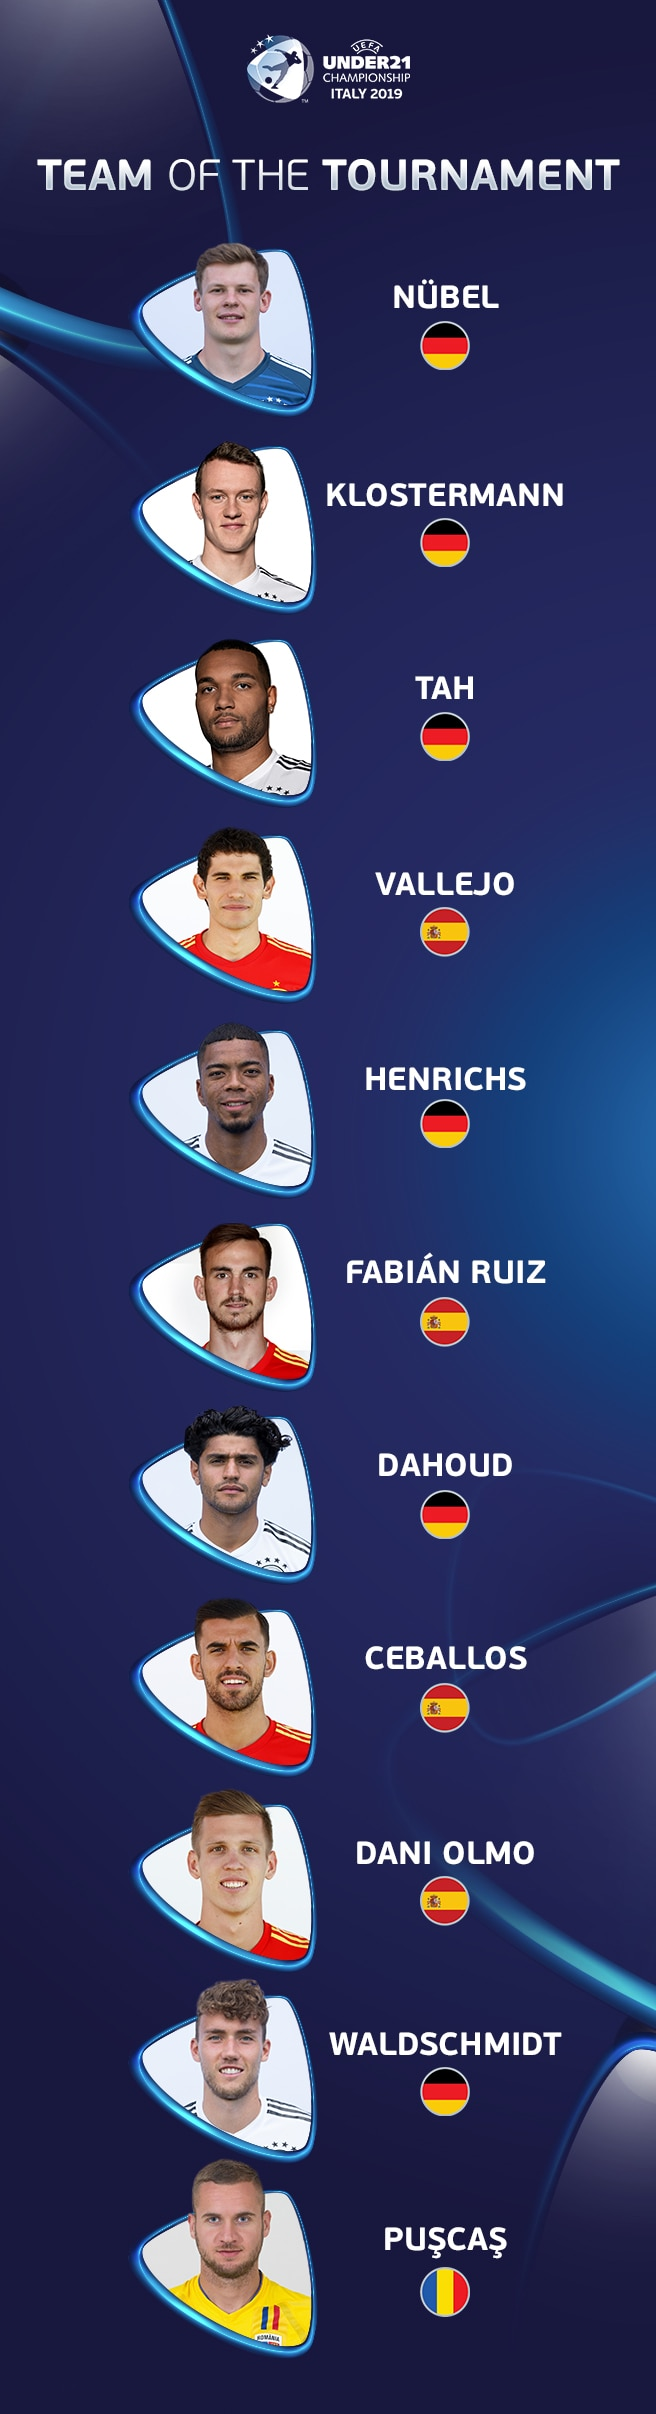 2019 U21 EURO Team of the Tournament